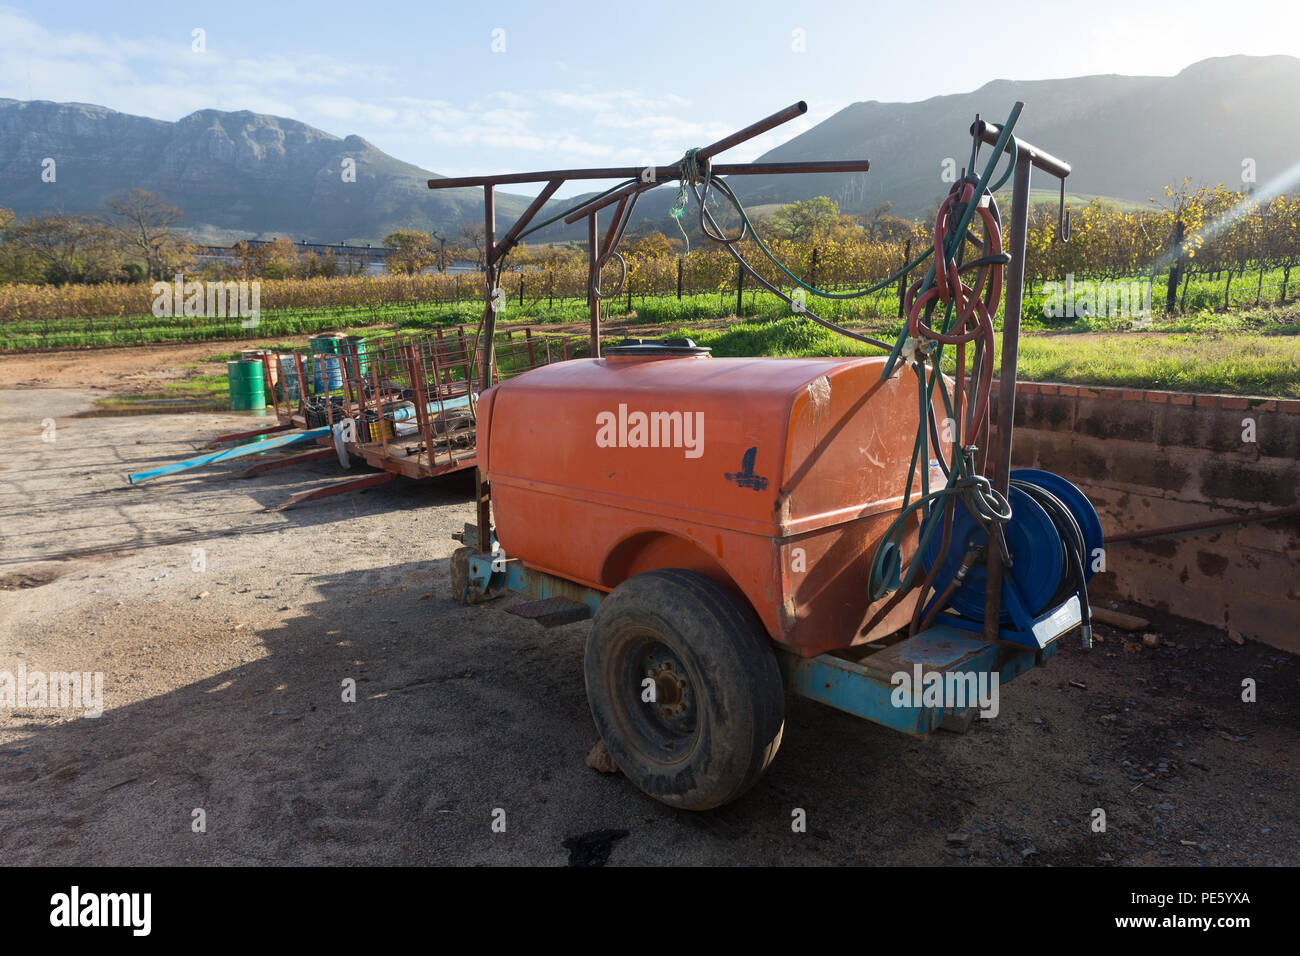 Vineyard Equipment For Spraying The Vineyards Parked Outdoors On The